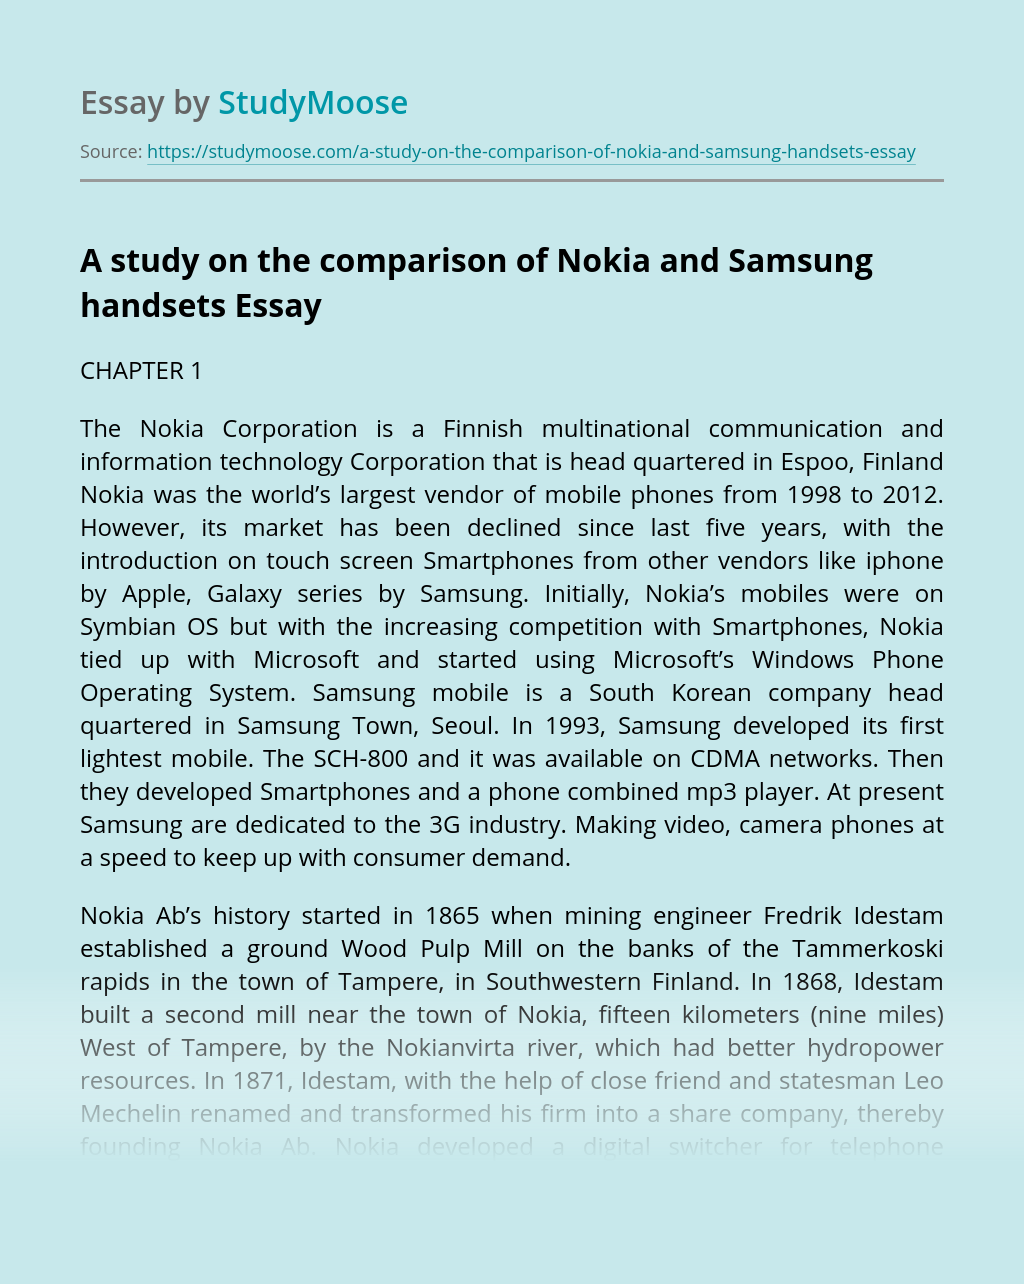 A Study on the Comparison of Nokia and Samsung Handsets